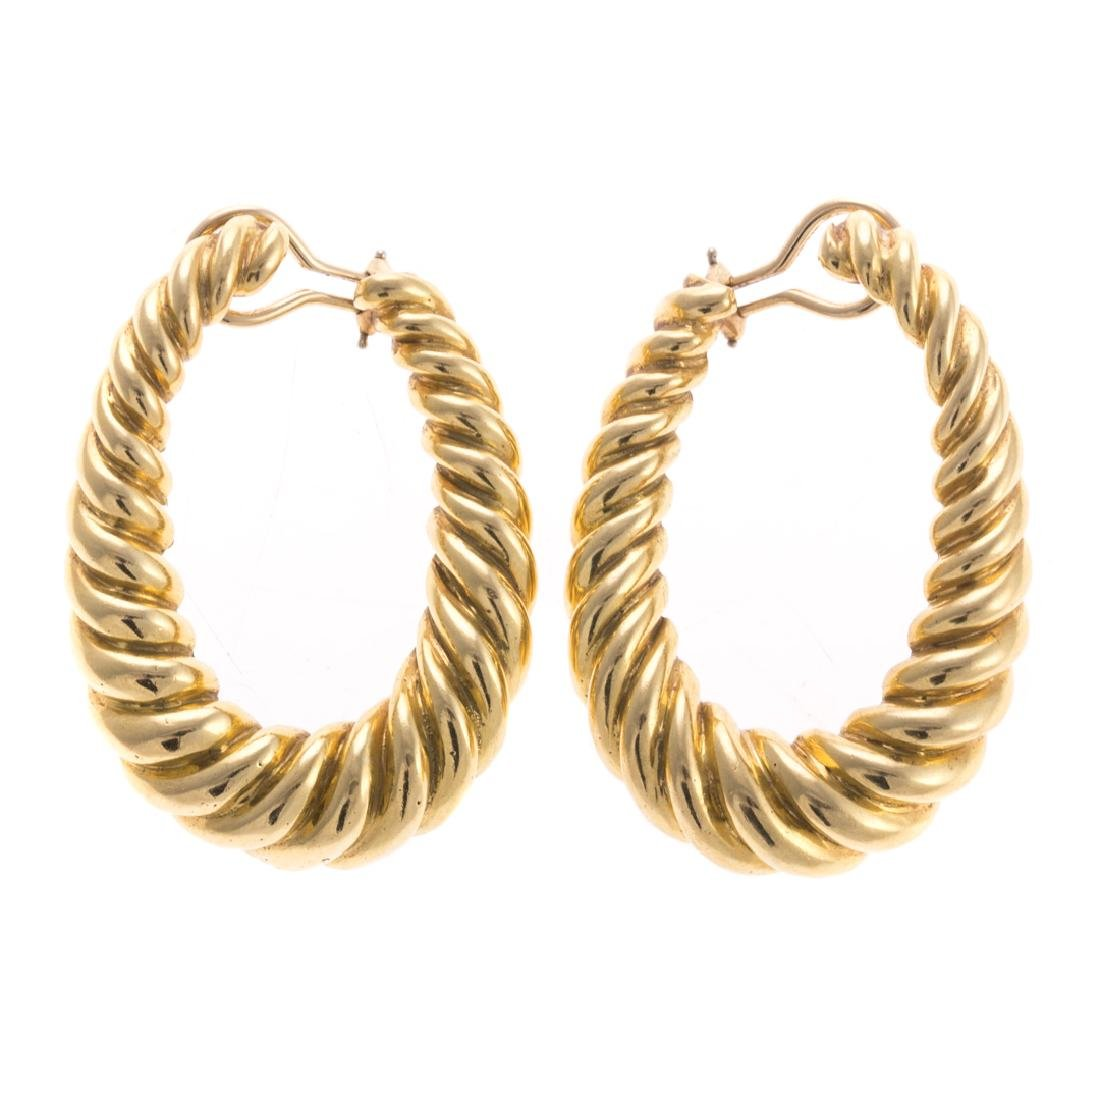 A Pair of Lady's Oval Rope Earrings in 18K